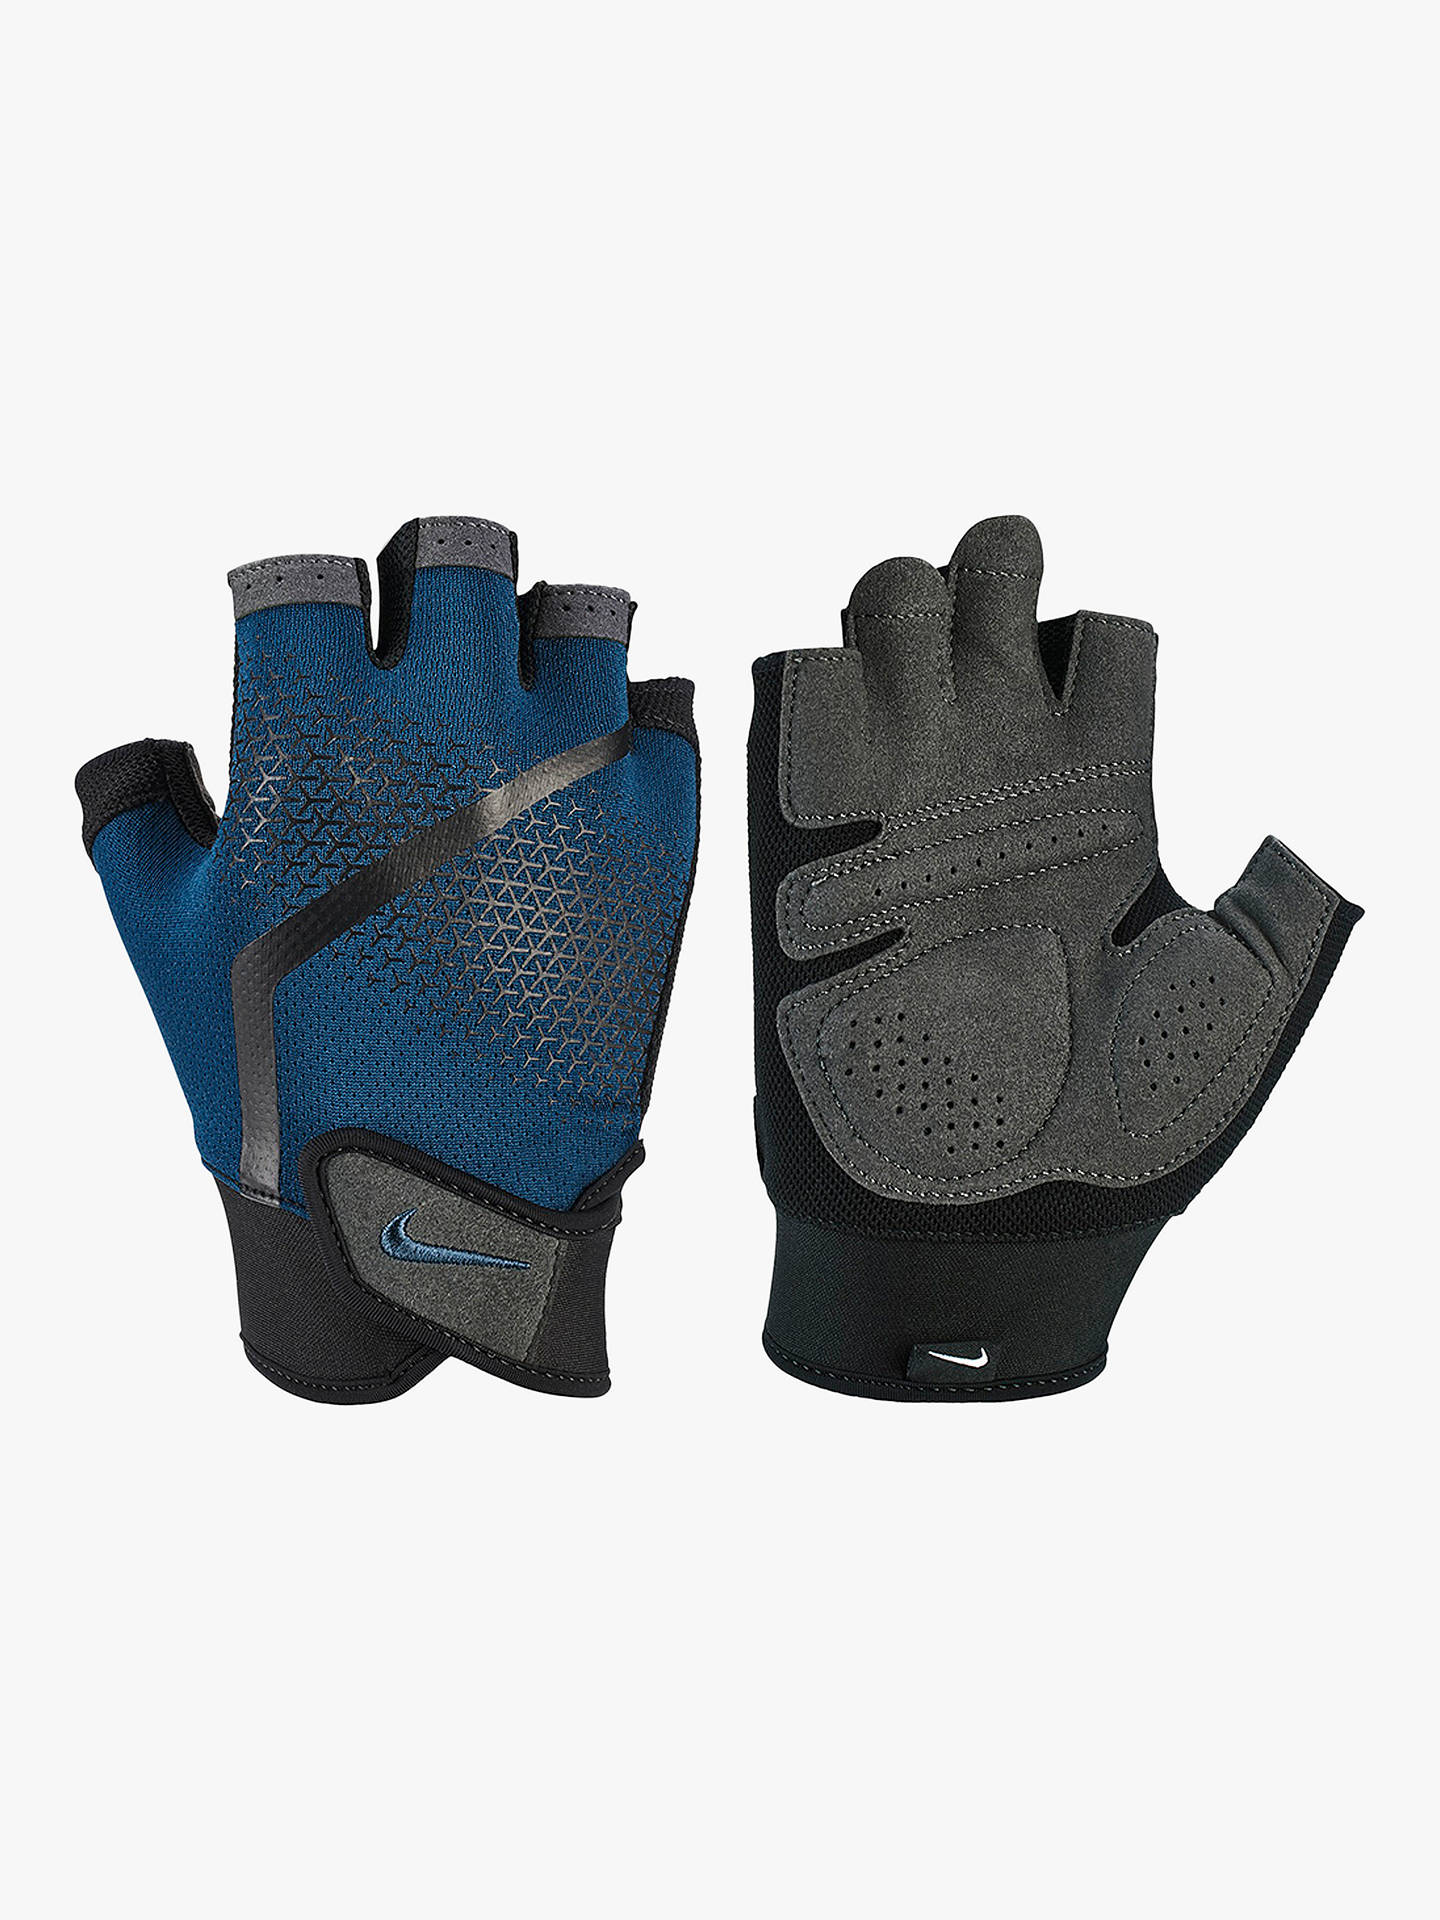 huge discount 49c19 970fc Buy Nike Extreme Fitness Training Gloves, Blue Force Black Thunderstorm, M  Online ...